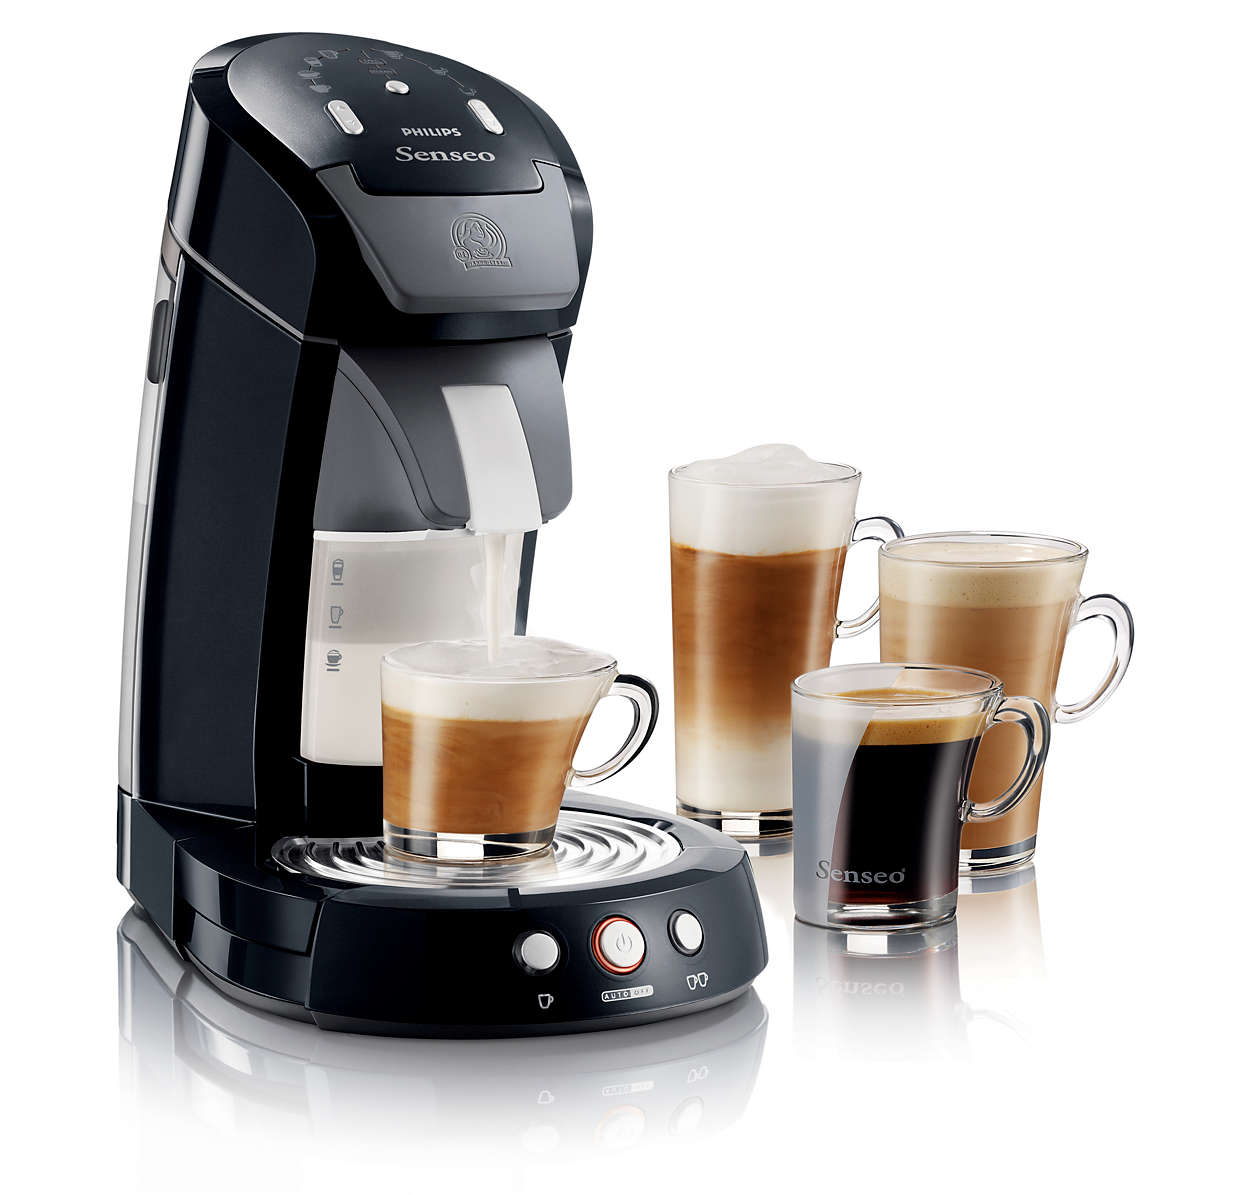 latte select coffee pod machine hd7850 60 senseo. Black Bedroom Furniture Sets. Home Design Ideas